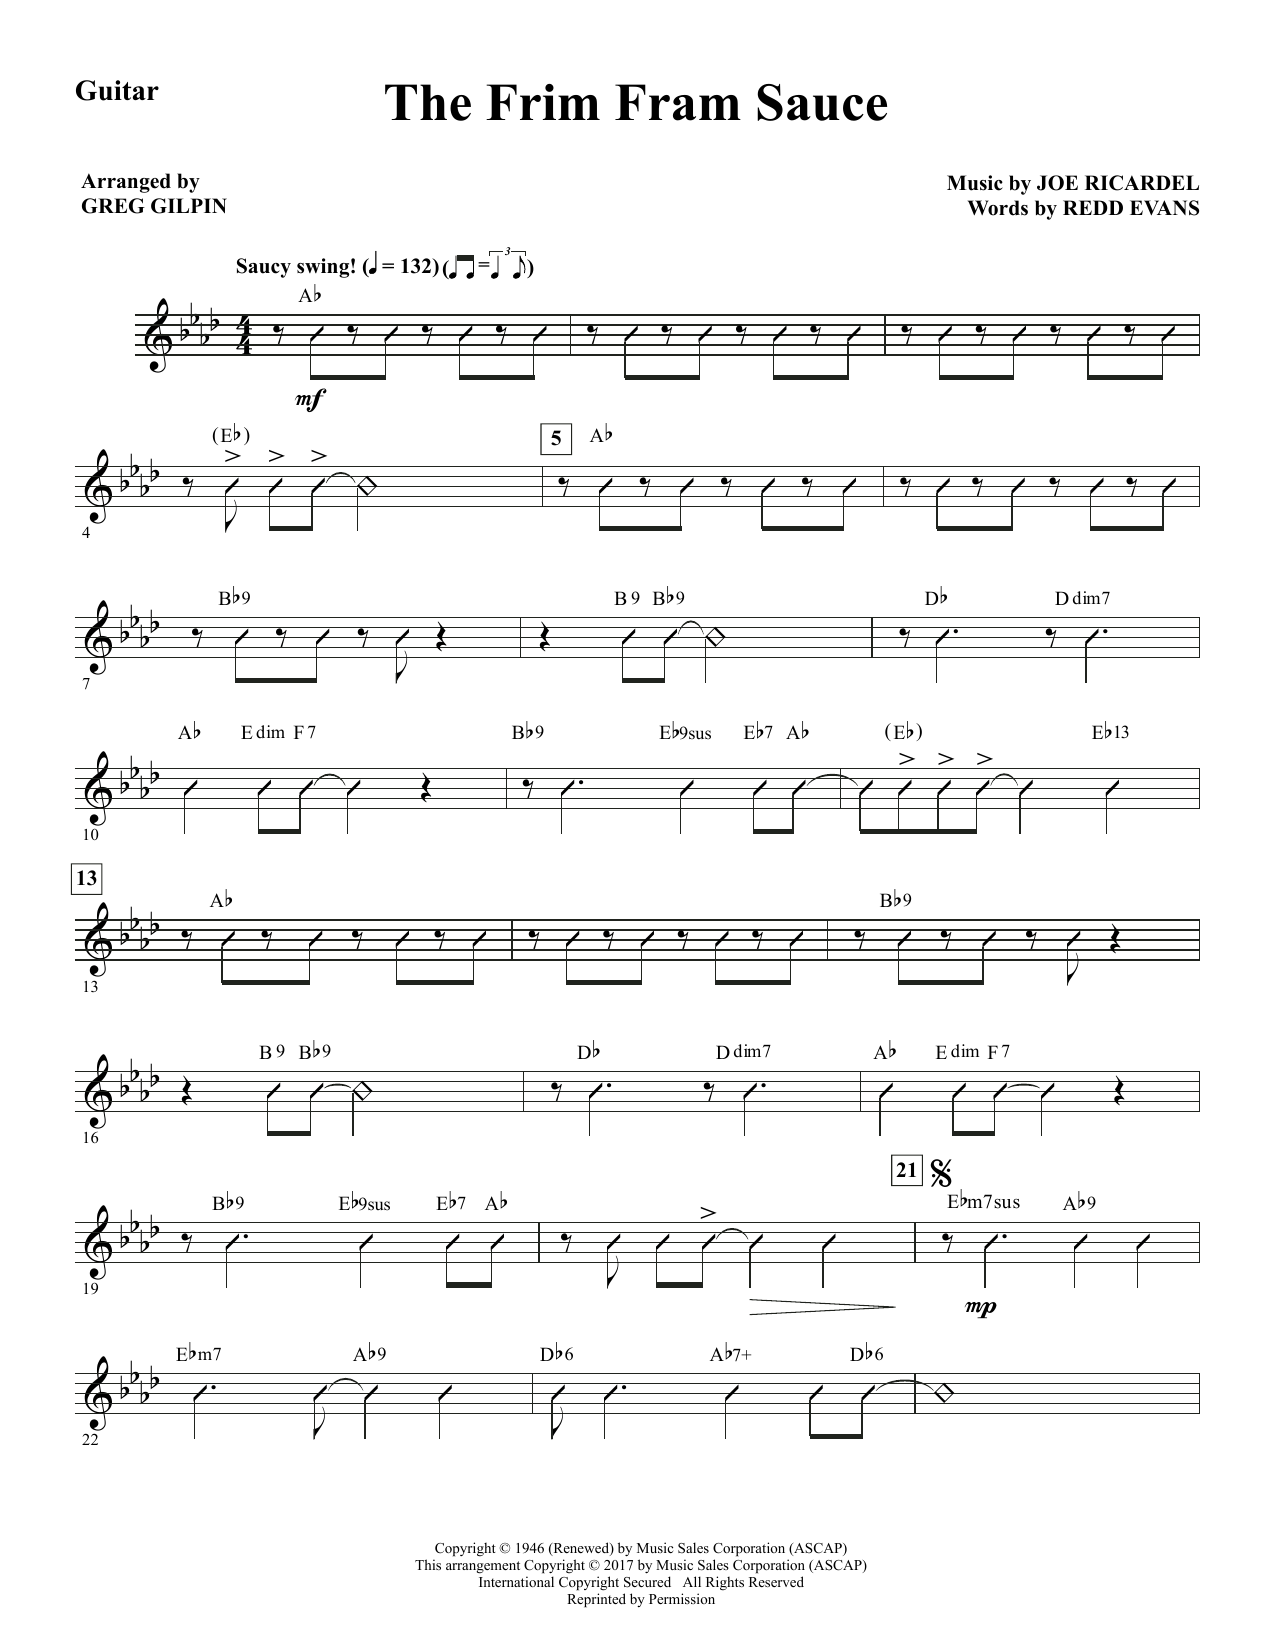 The Frim Fram Sauce - Guitar Sheet Music